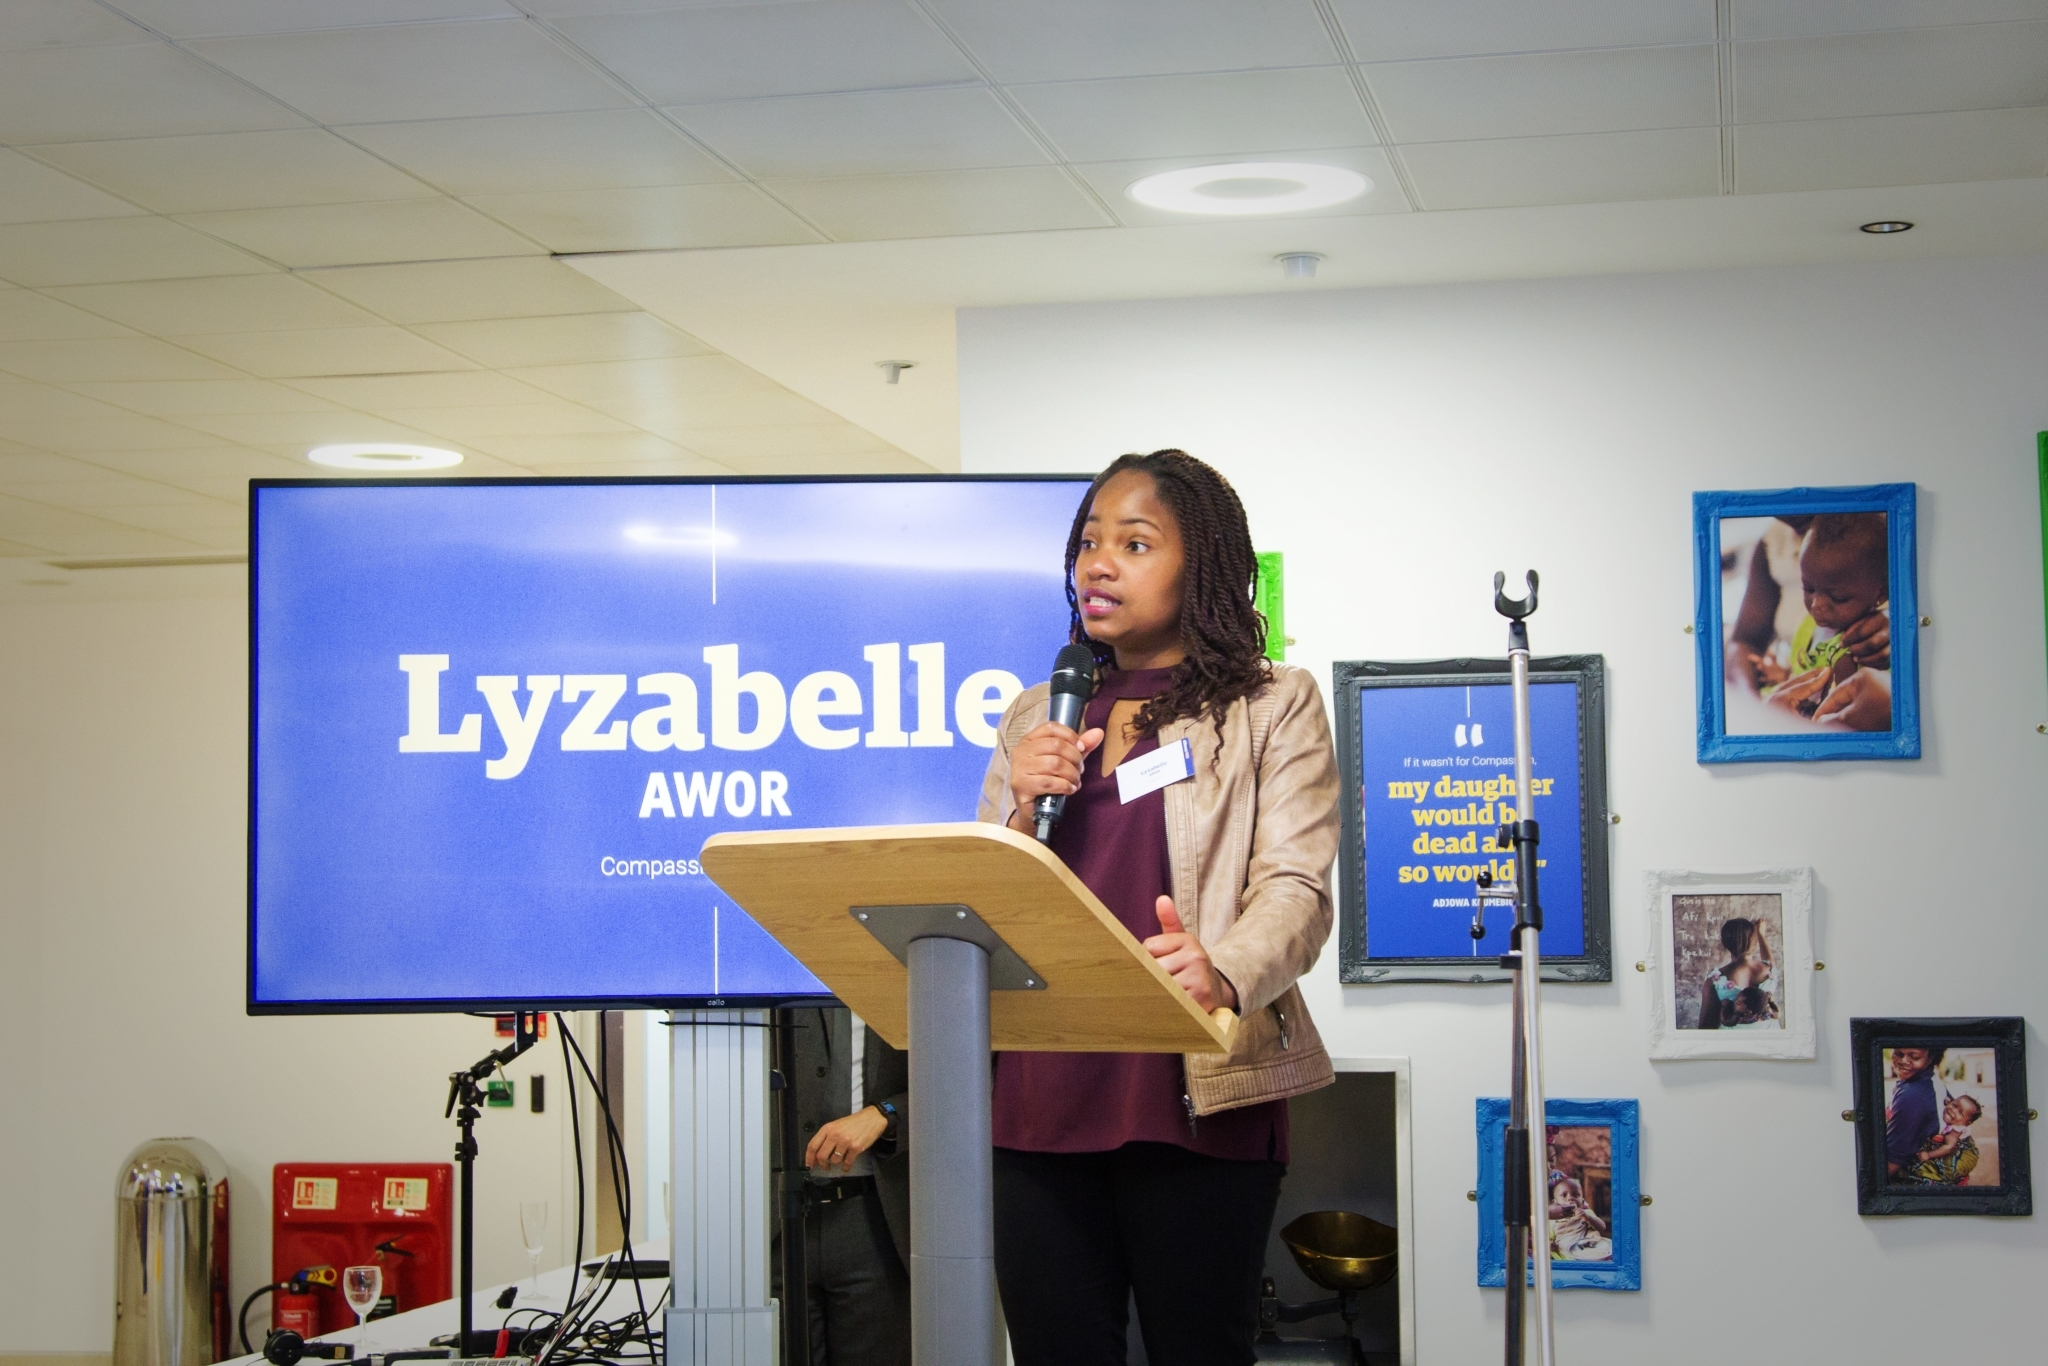 Lyzabelle Awor Compassion UK